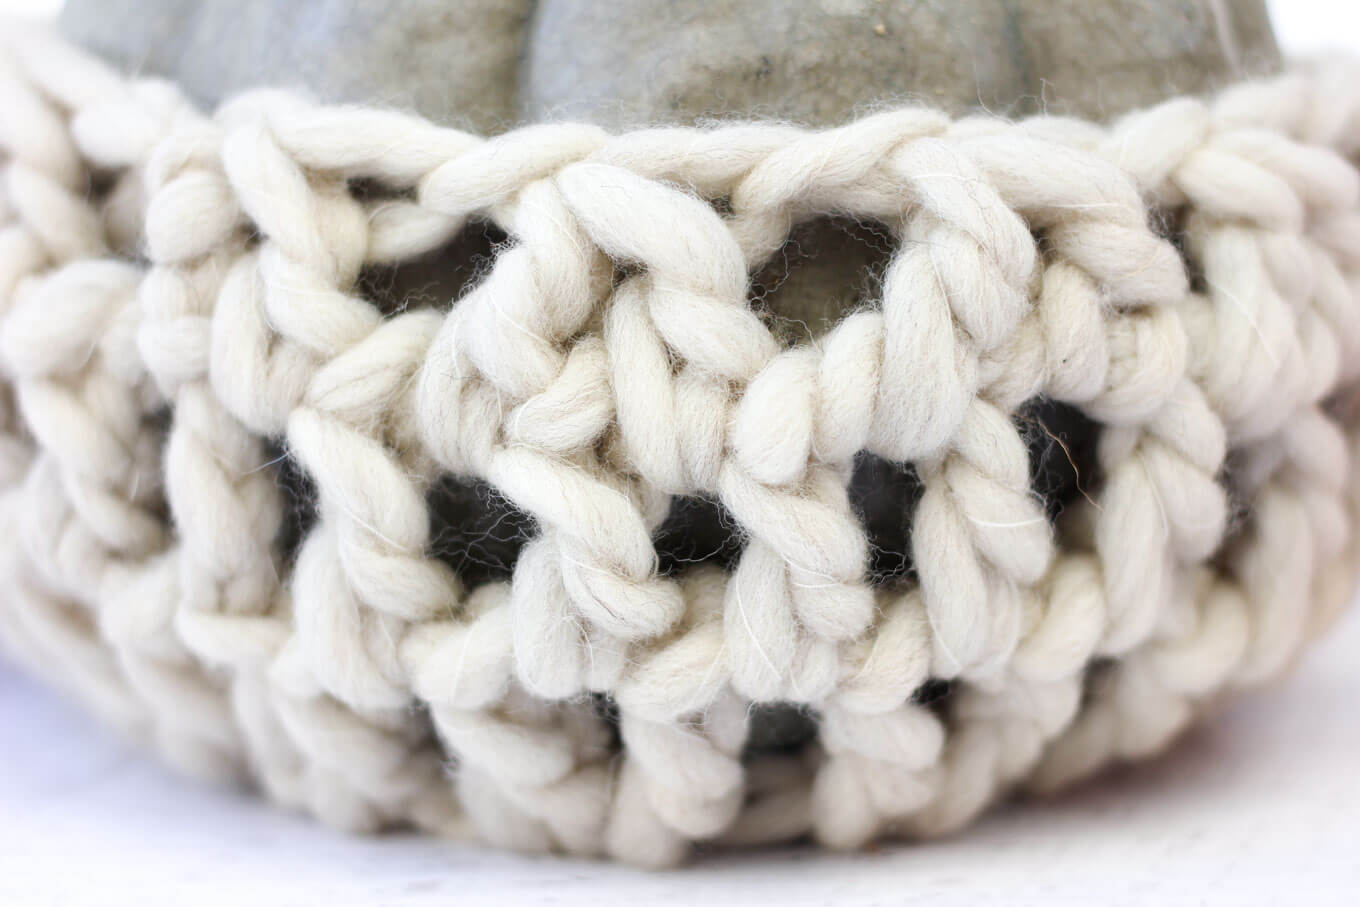 Rich texture of double crochet stitches in natural wool.